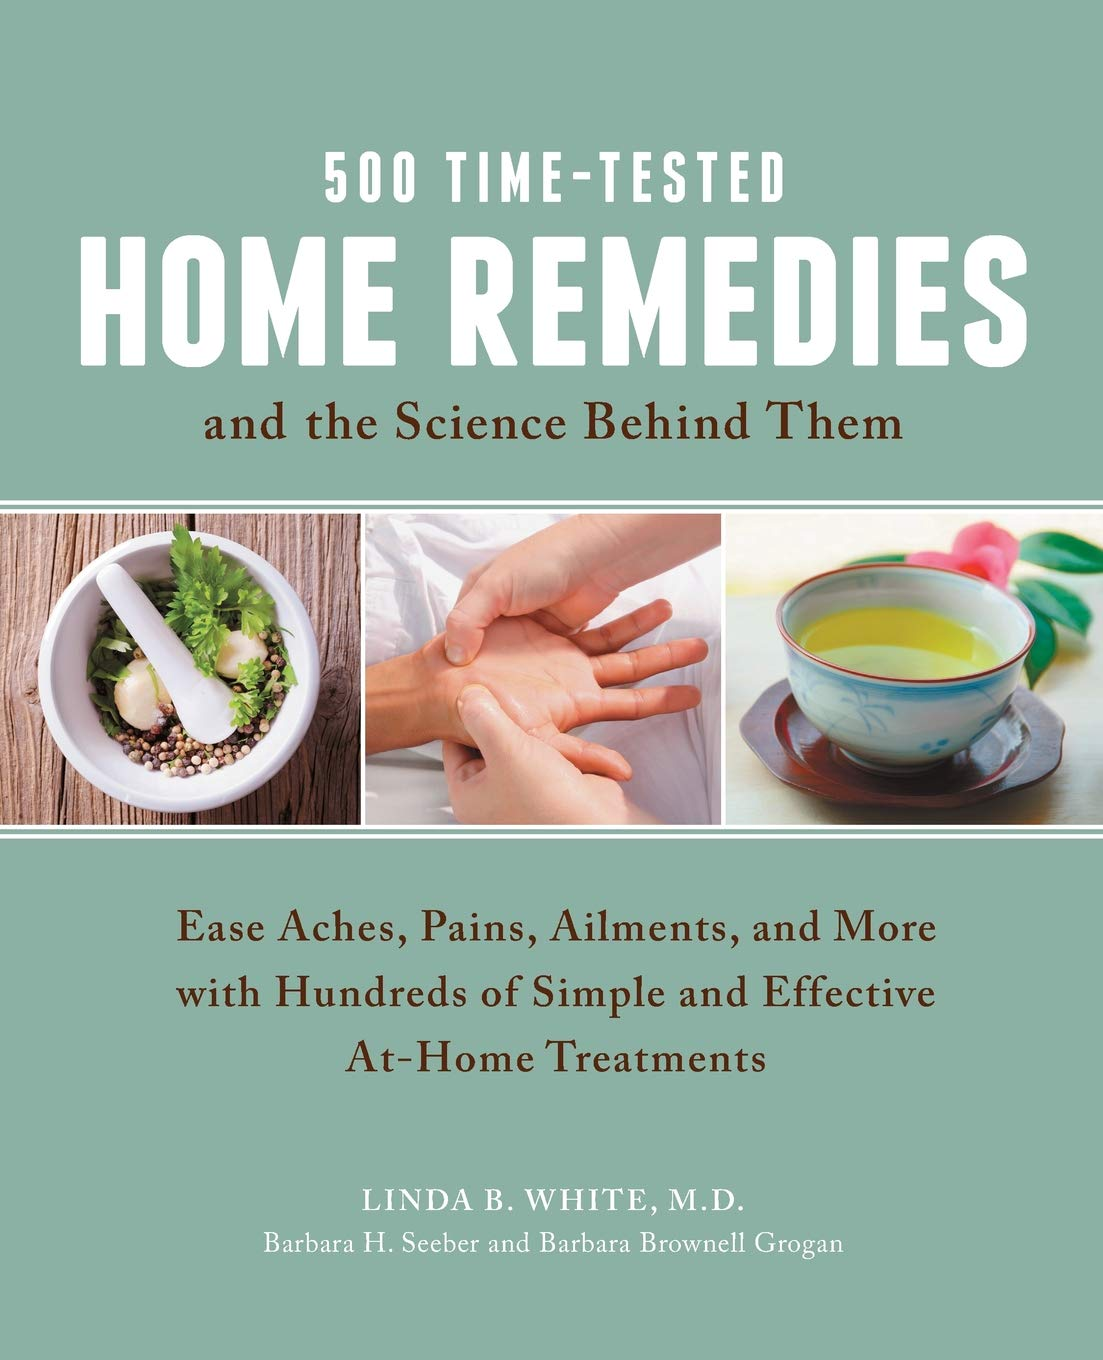 500 Time-Tested Home Remedies and the Science Behind Them: Ease Aches, Pains, Ailments, and More with Hundreds of Simple and Effective At-Home Treatments by Fair Winds Press